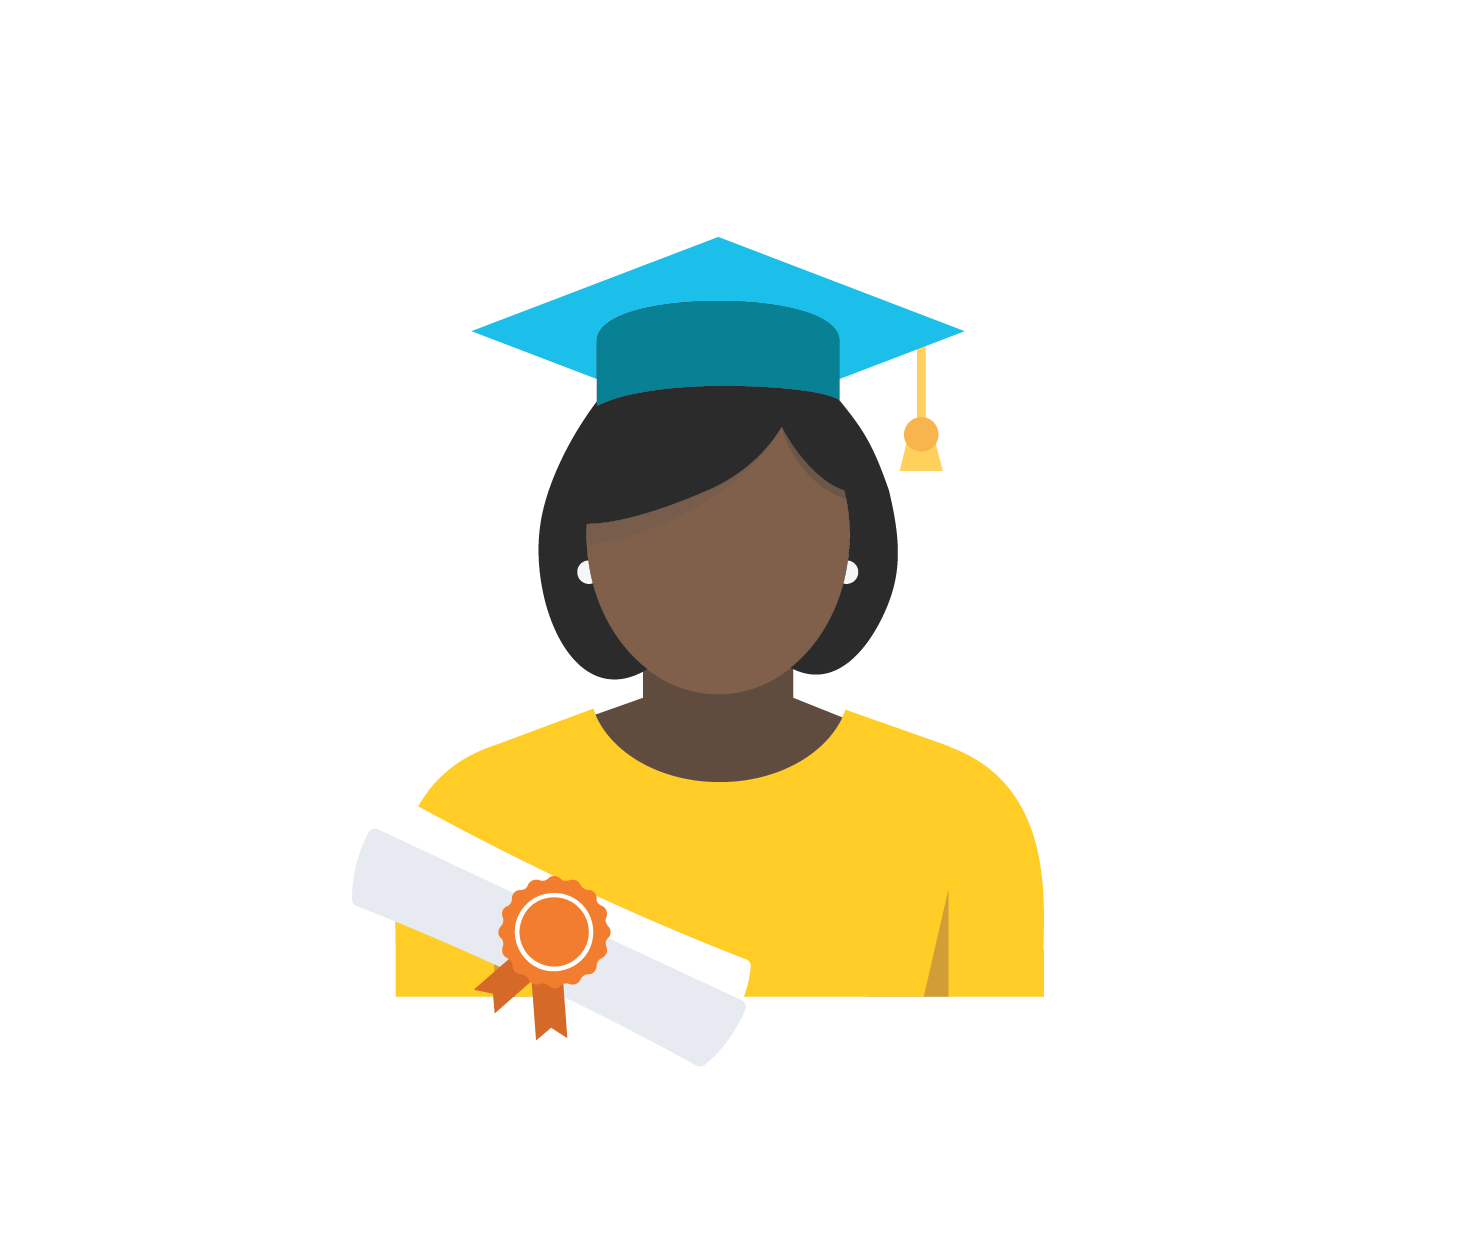 Icon of a graduate with a cap and diploma